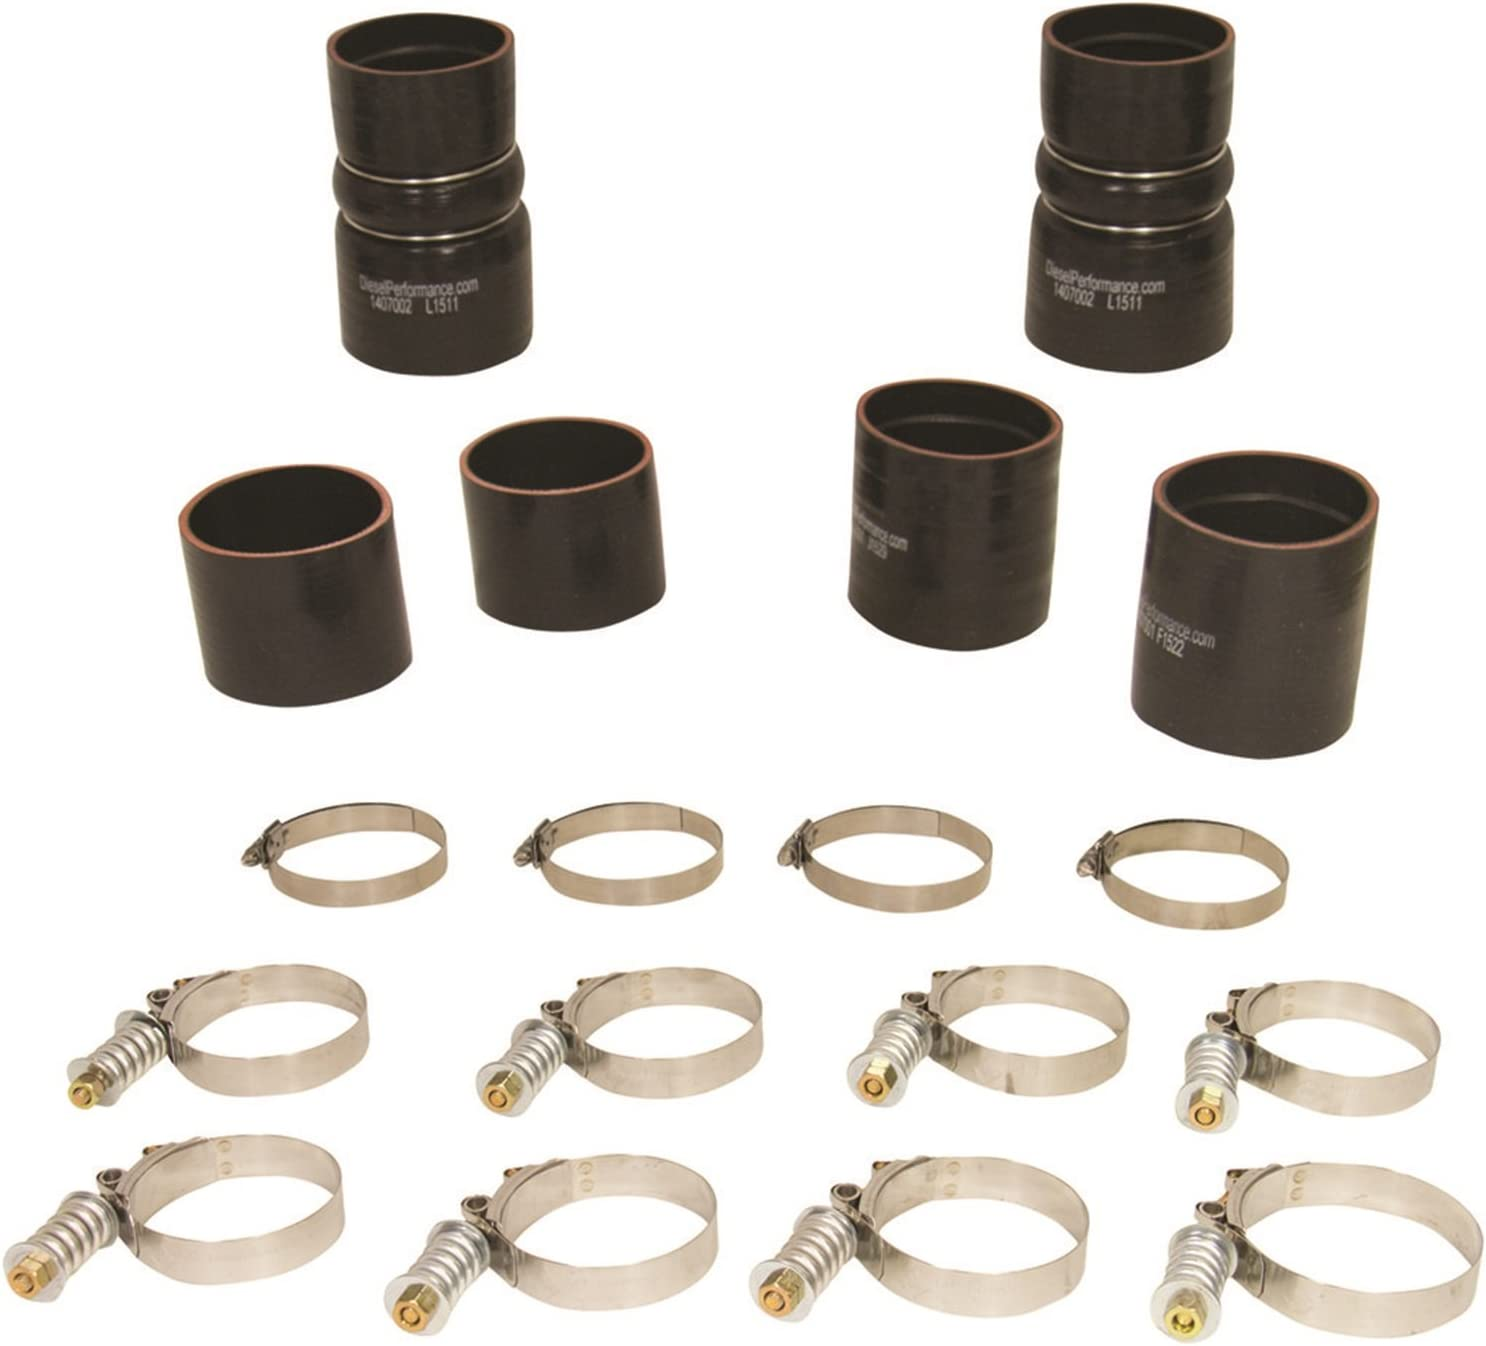 BETTERCLOUD Intercooler CAC Hose /& Clamp Kit Fit for 2003-2007 Ford 6.0L Powerstroke Diesel